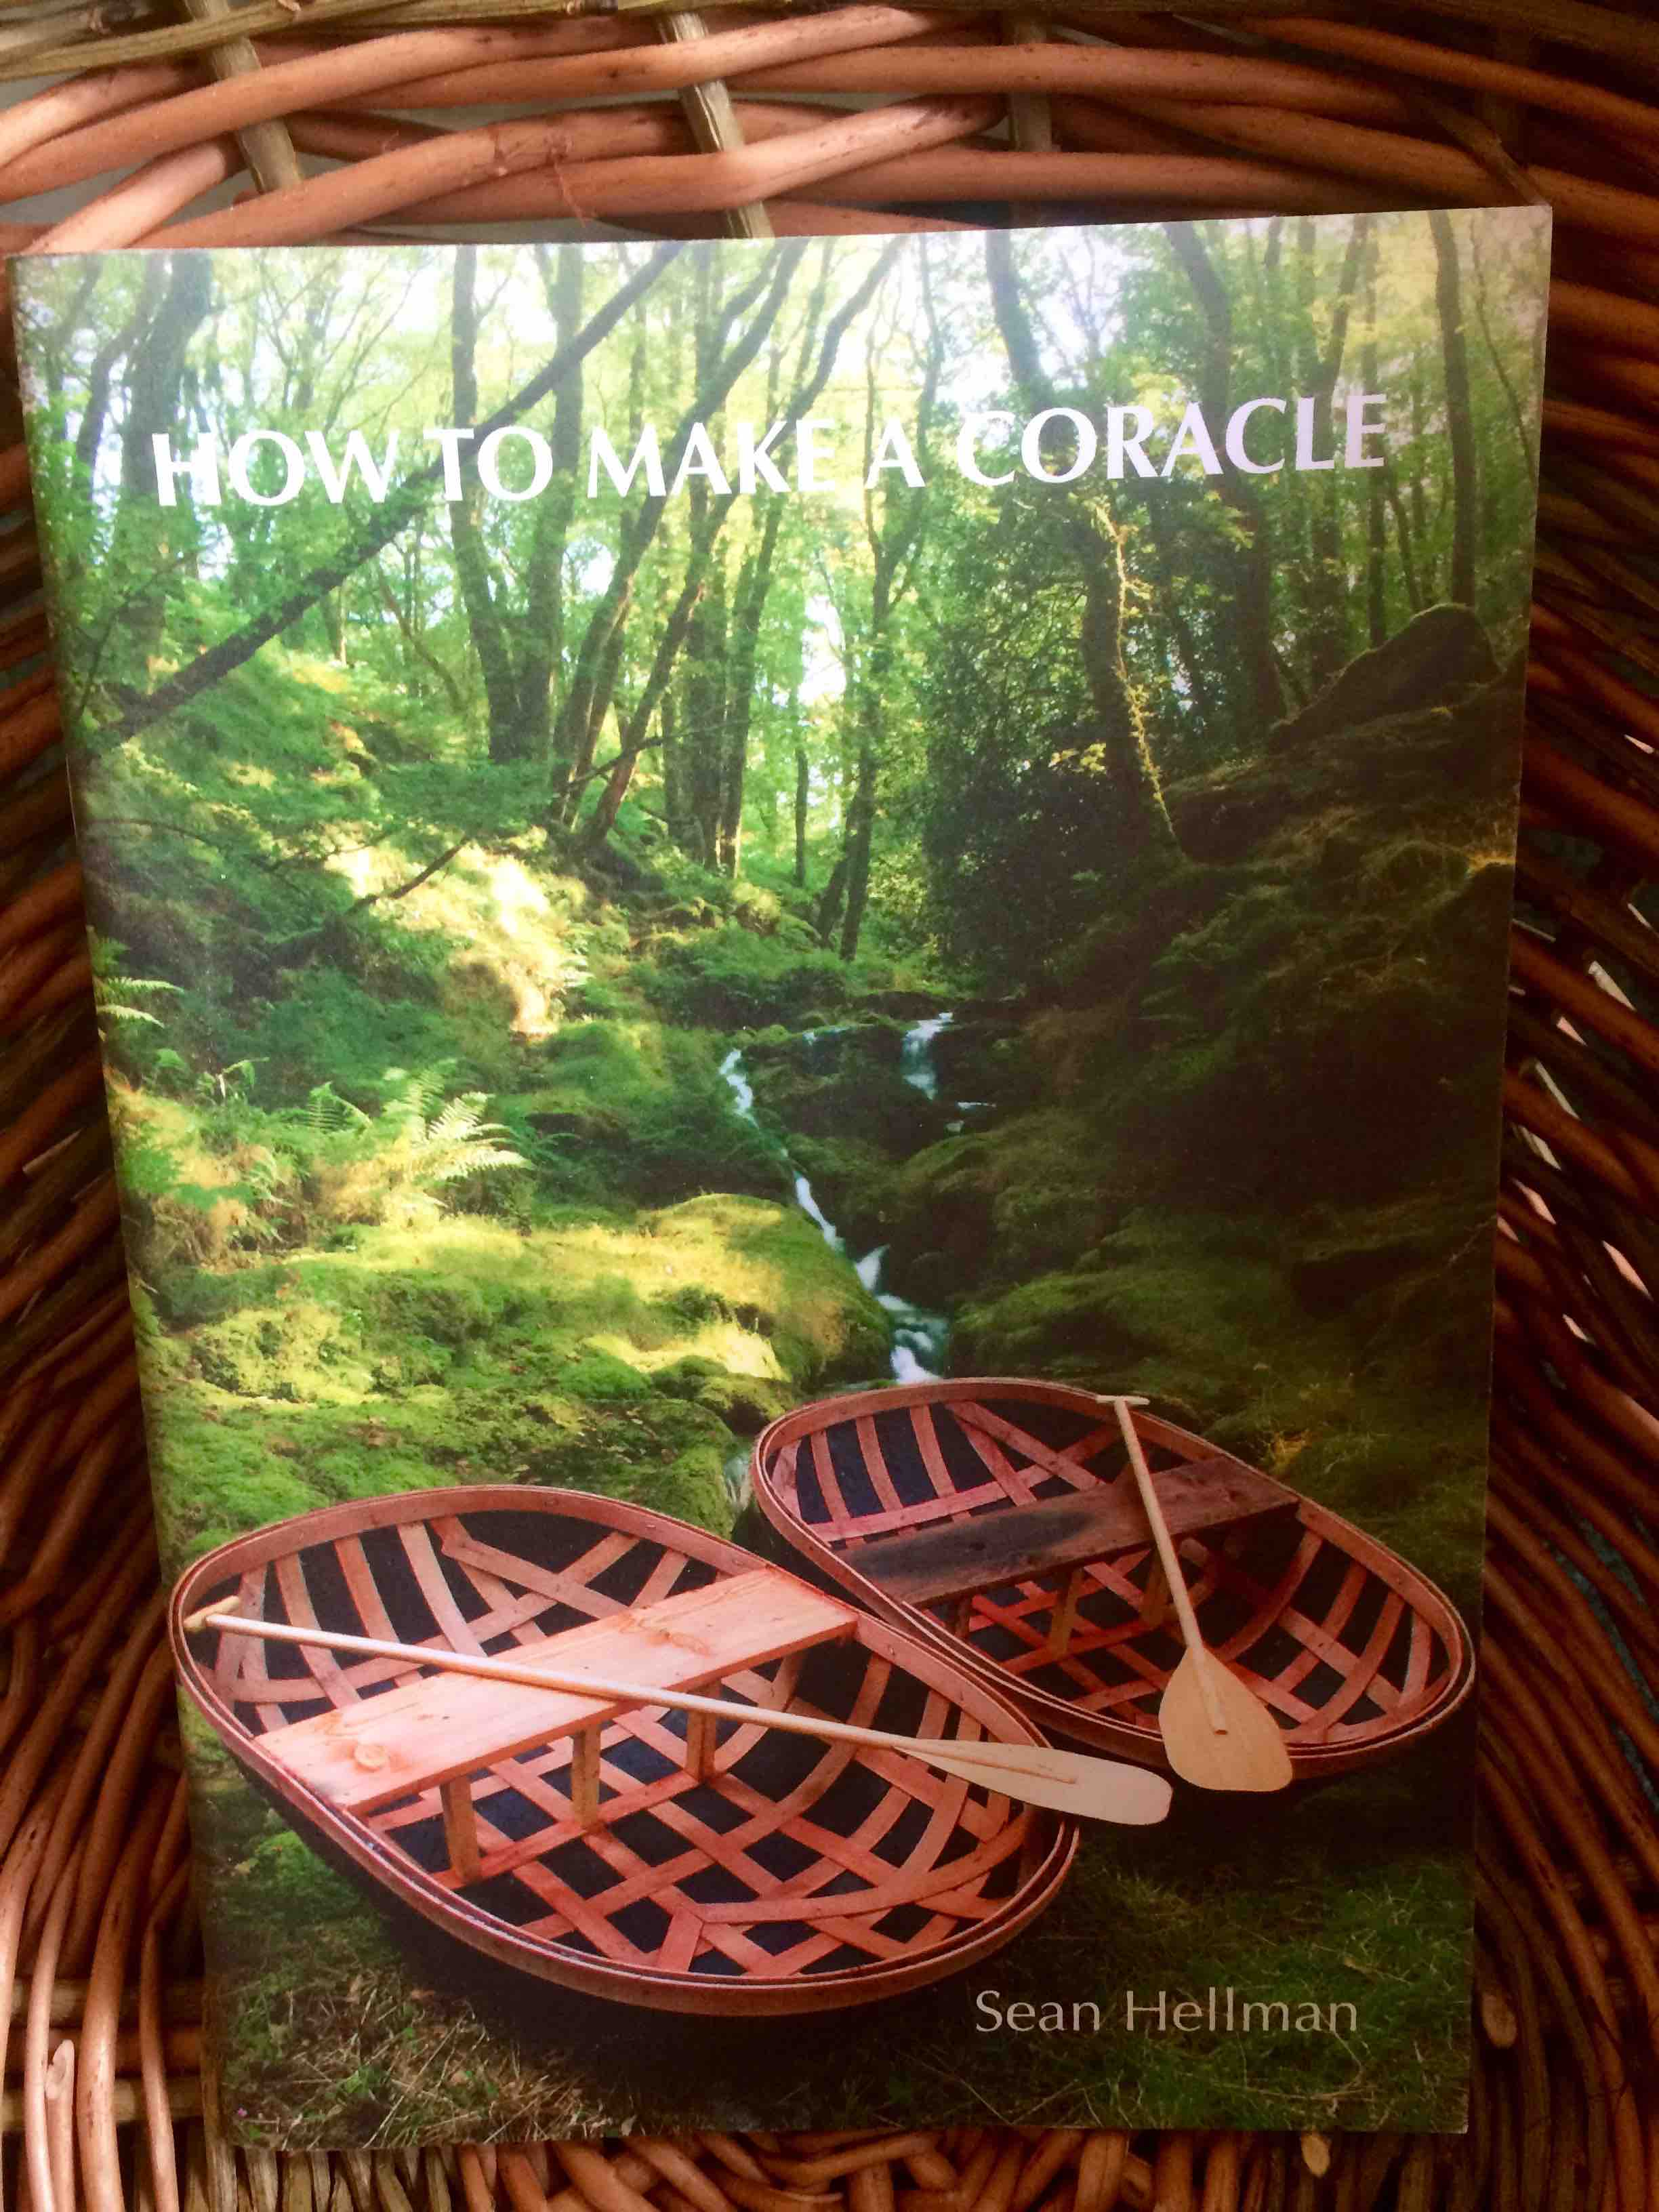 How to make a Coracle, Sean Hellman